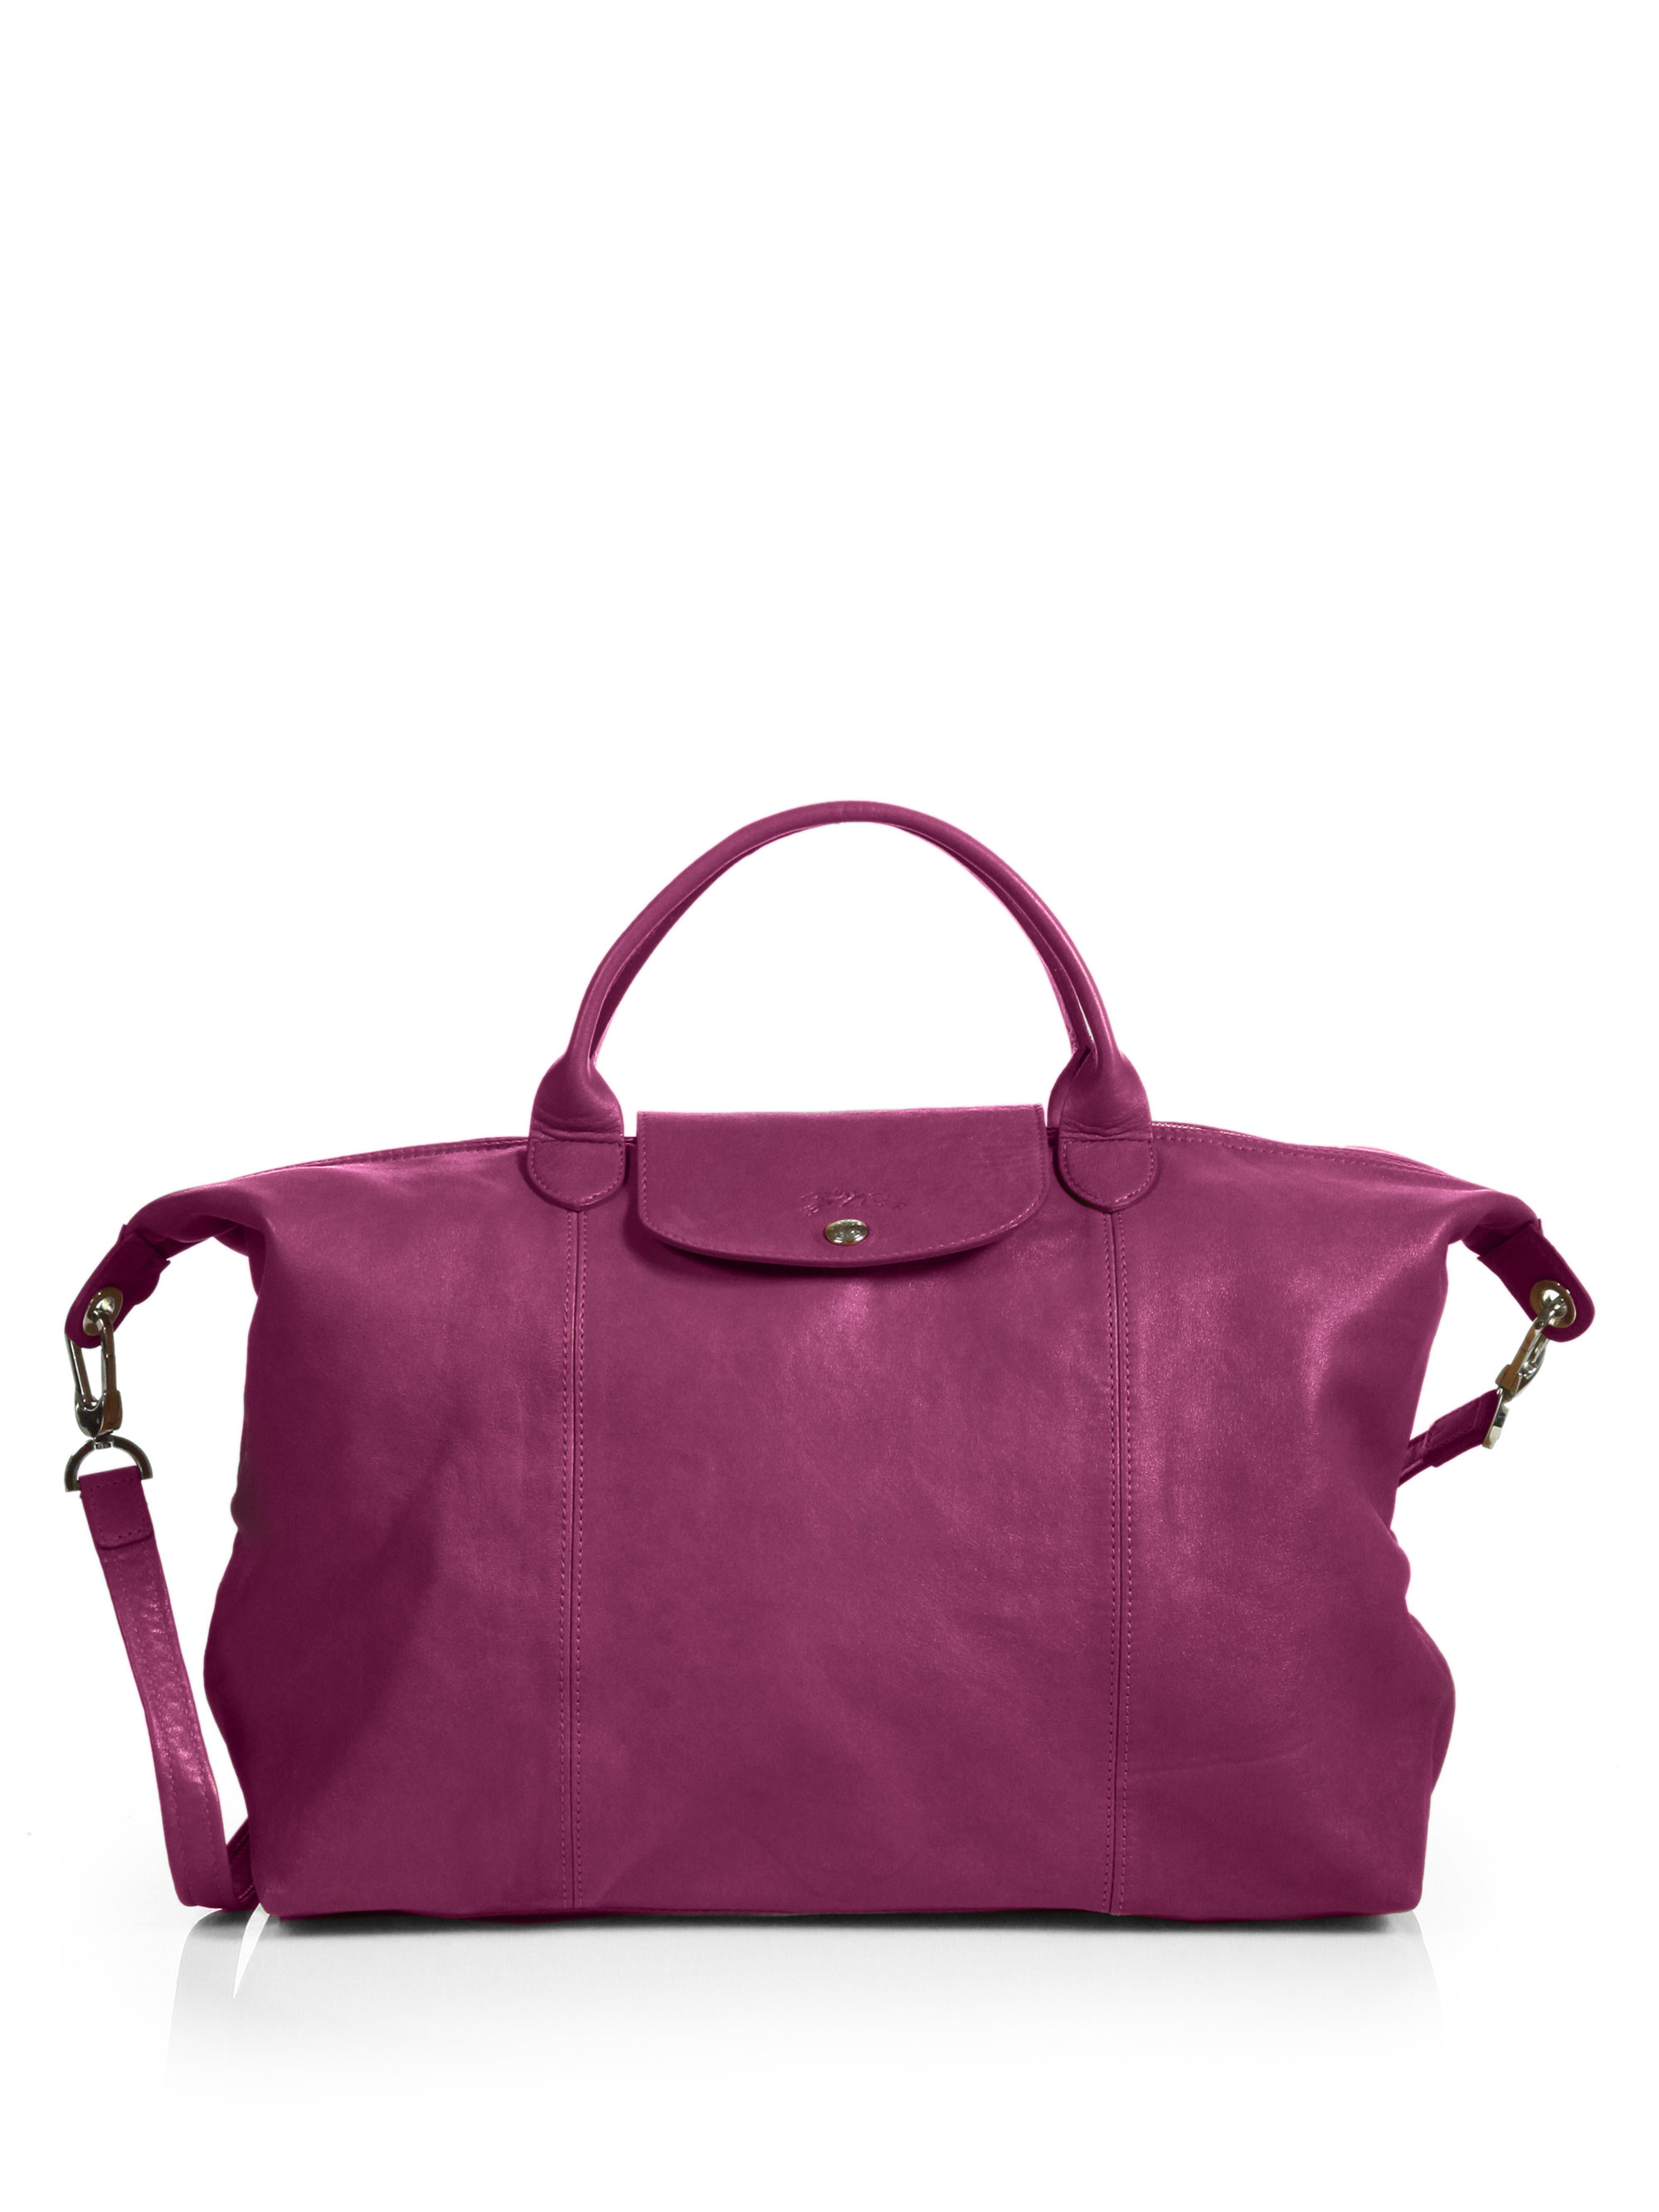 longchamp new le pliage cuir bag